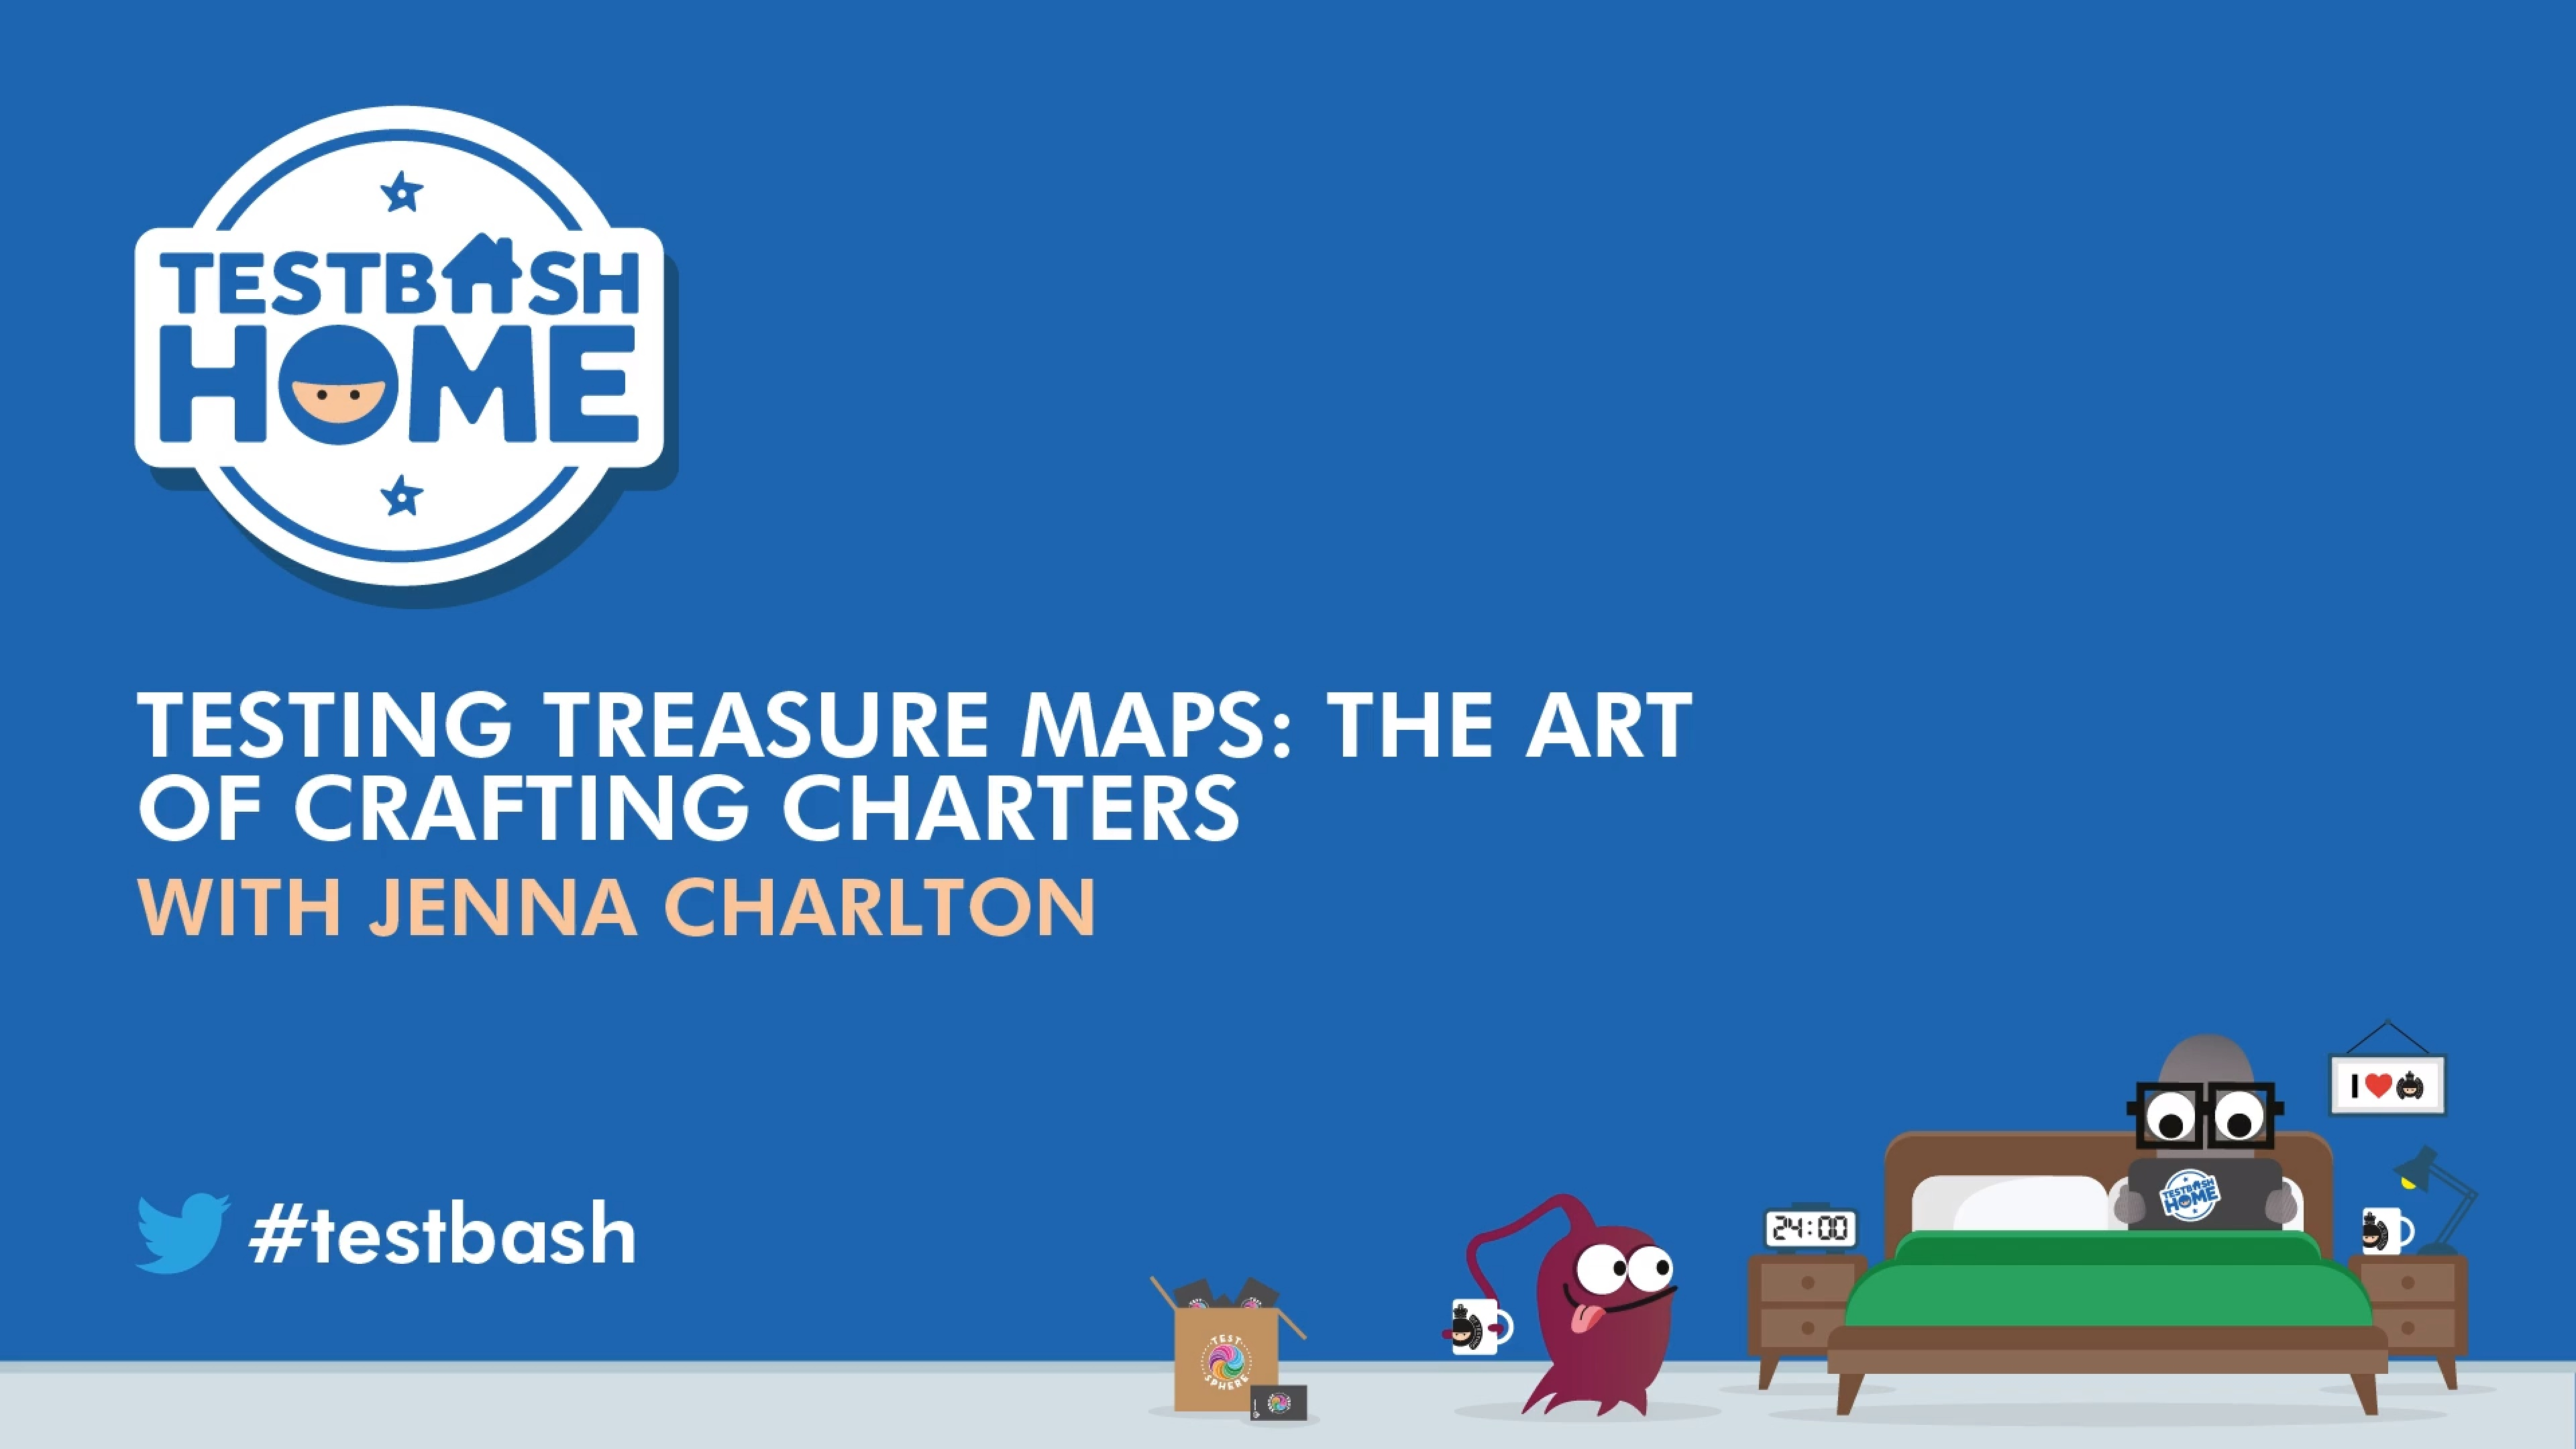 Testing Treasure Maps: The Art of Crafting Charters